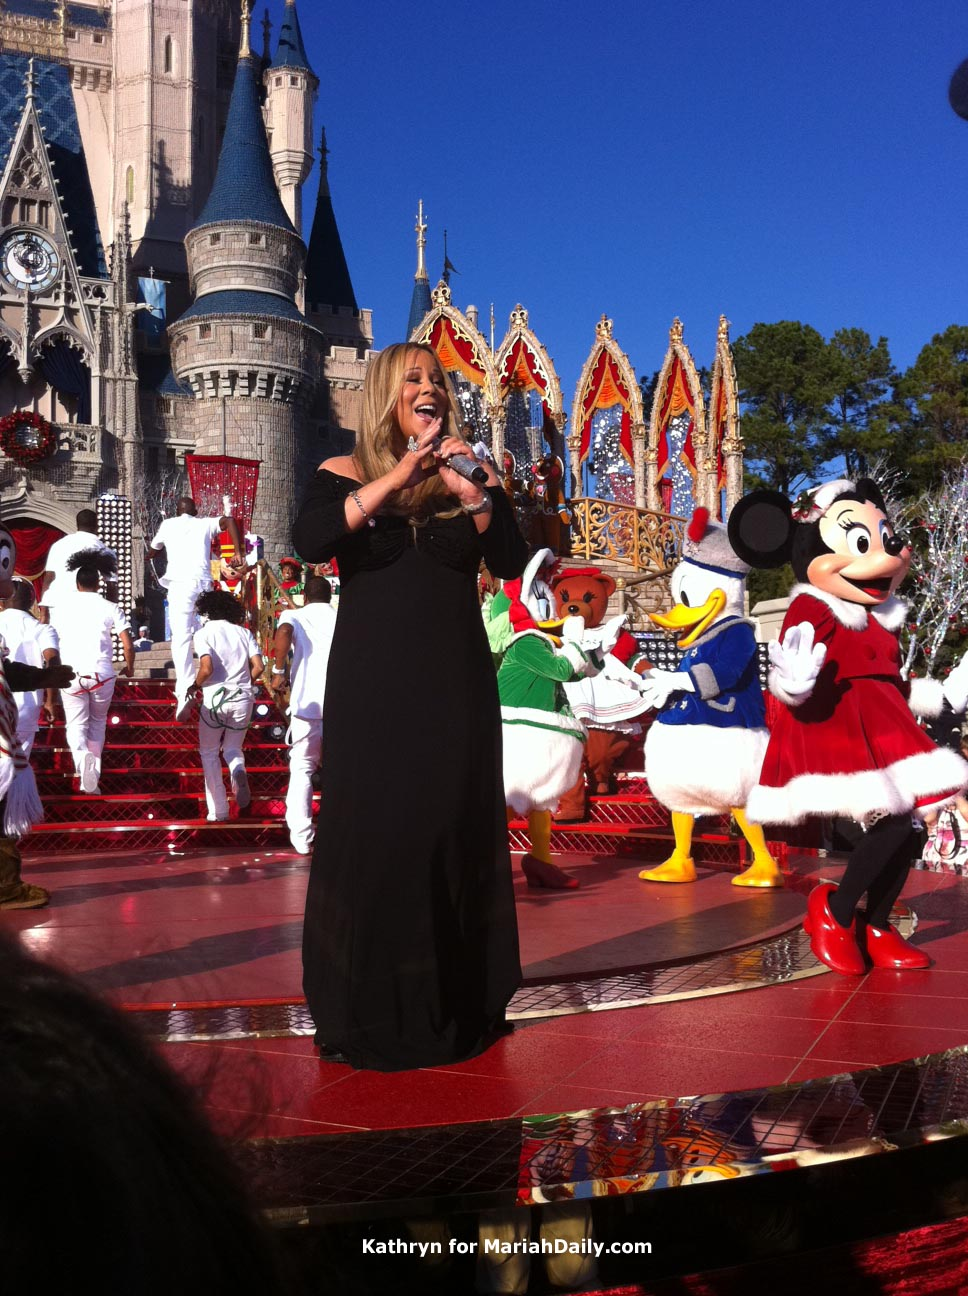 mariah3 Hot Shots: Mariah Carey Films Disney Parks Christmas Day Parade Performance